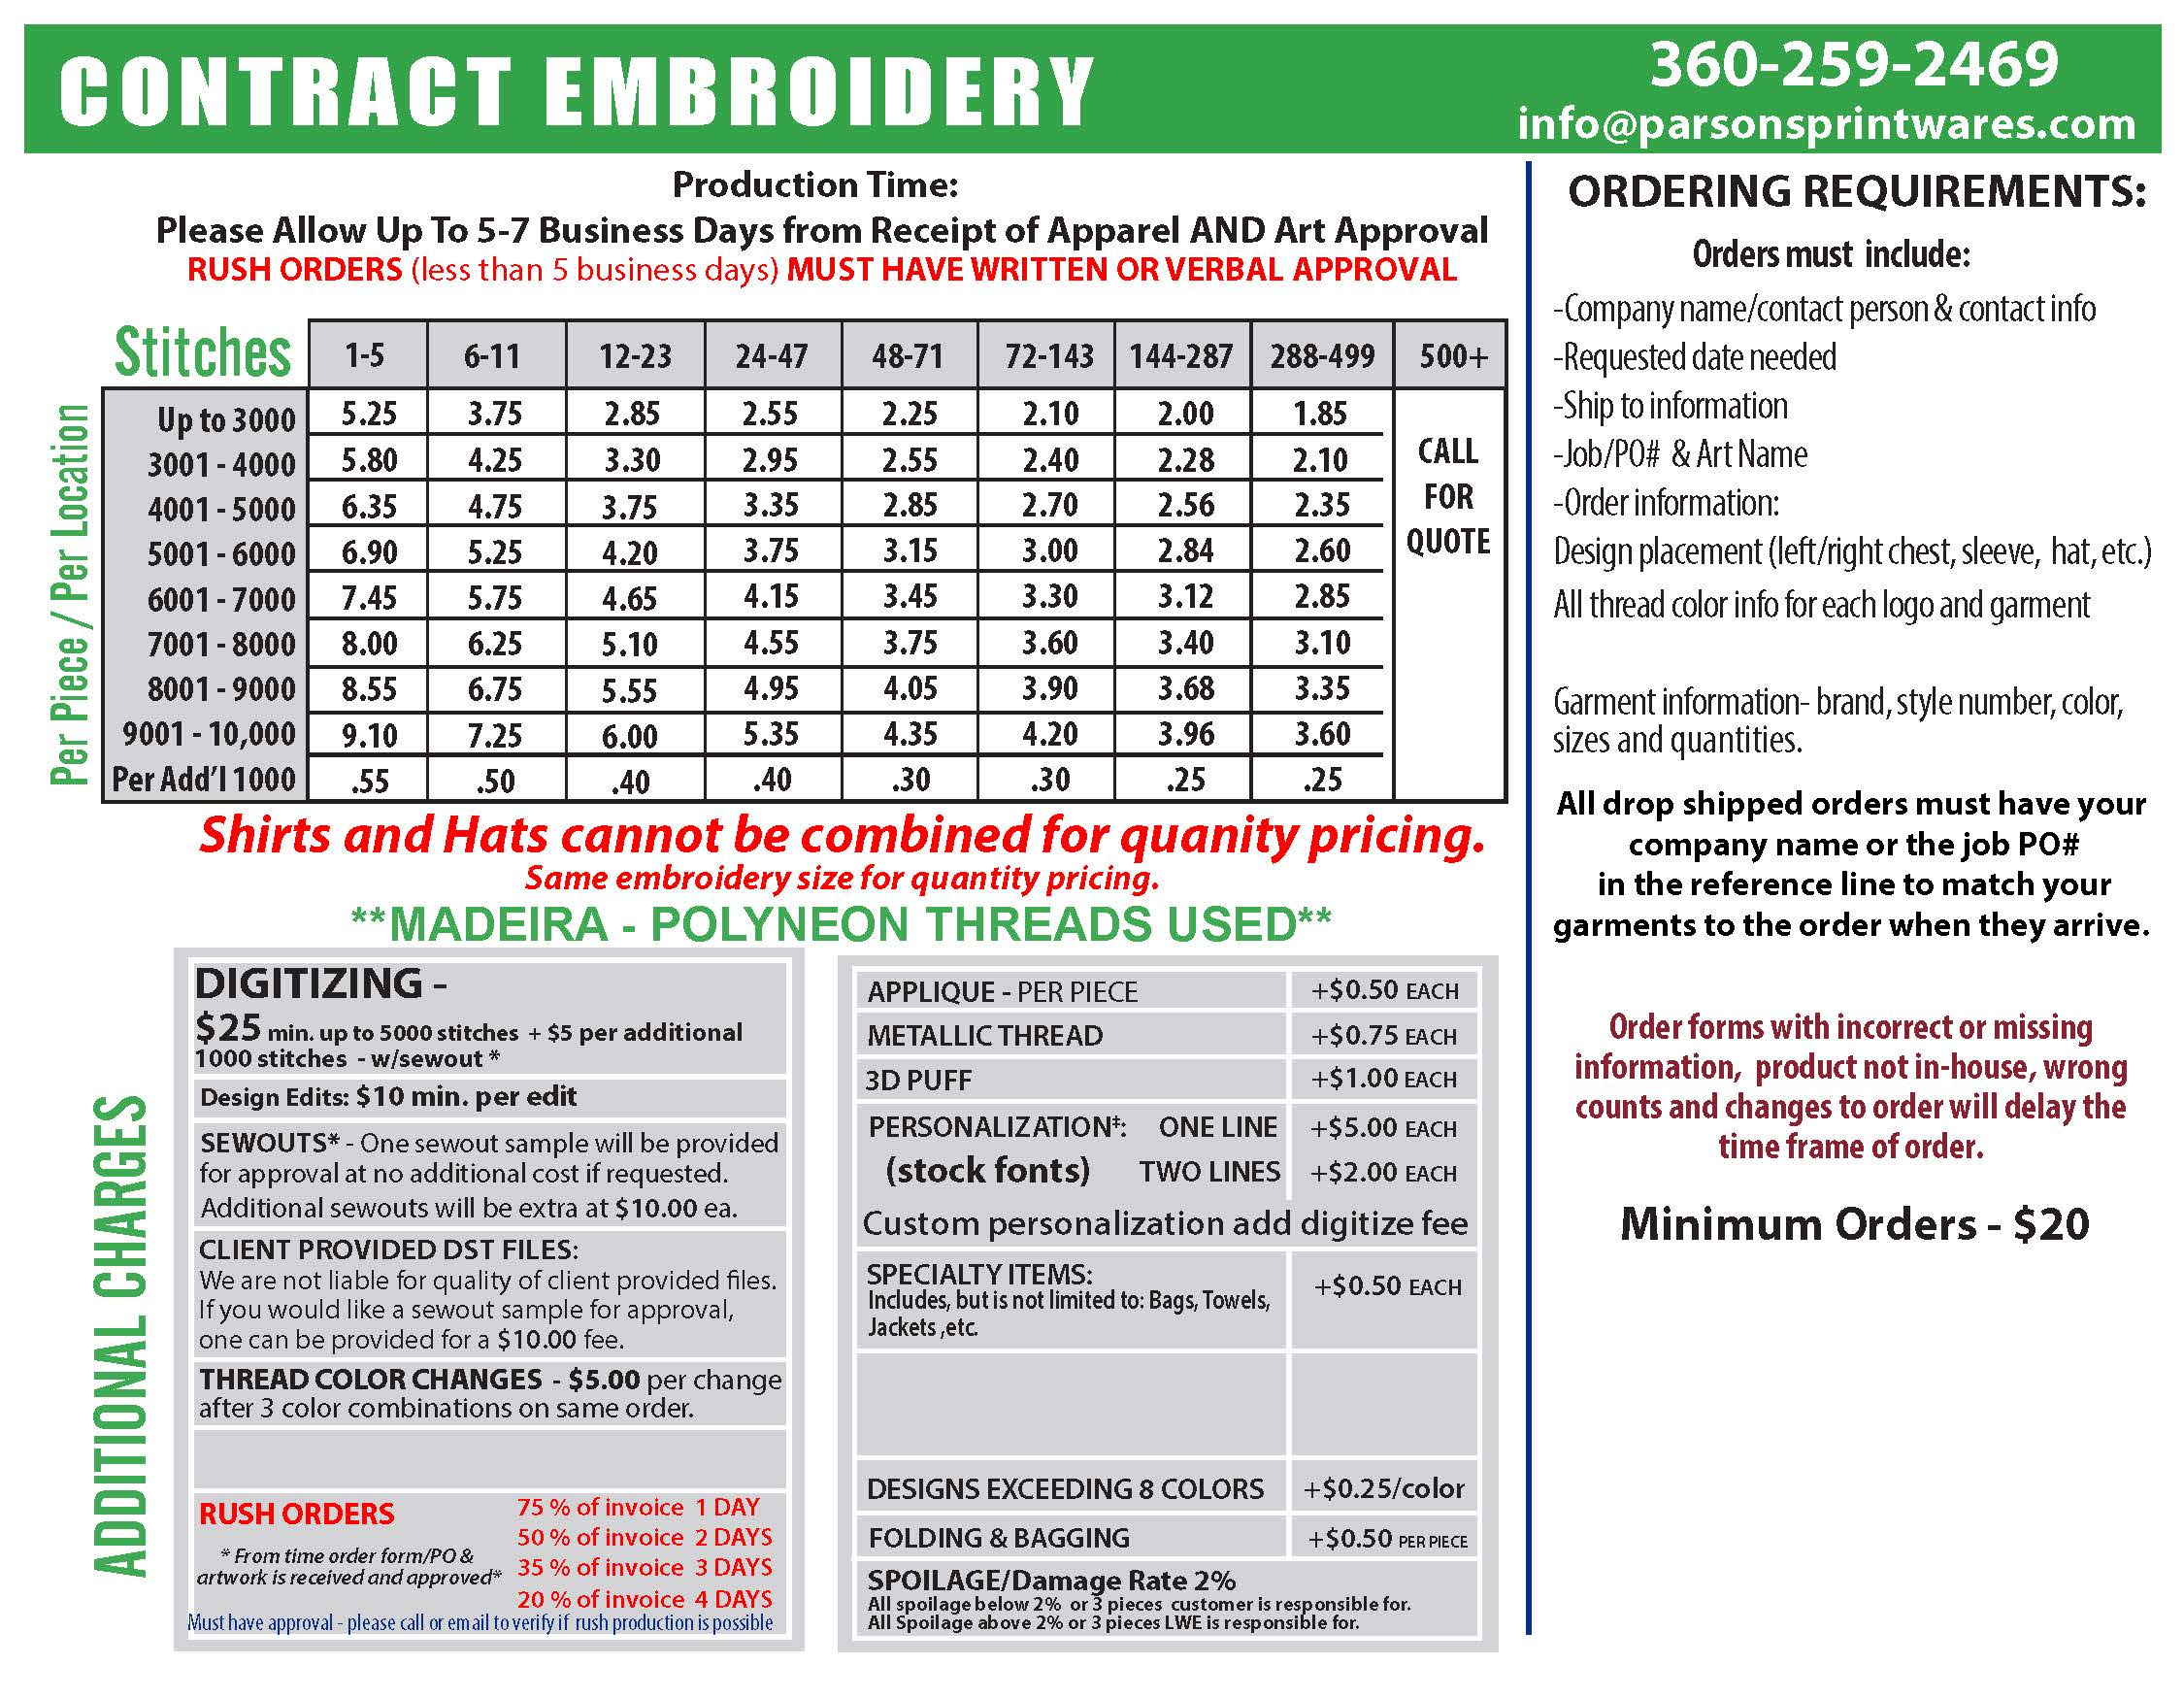 Embroidery Pricing